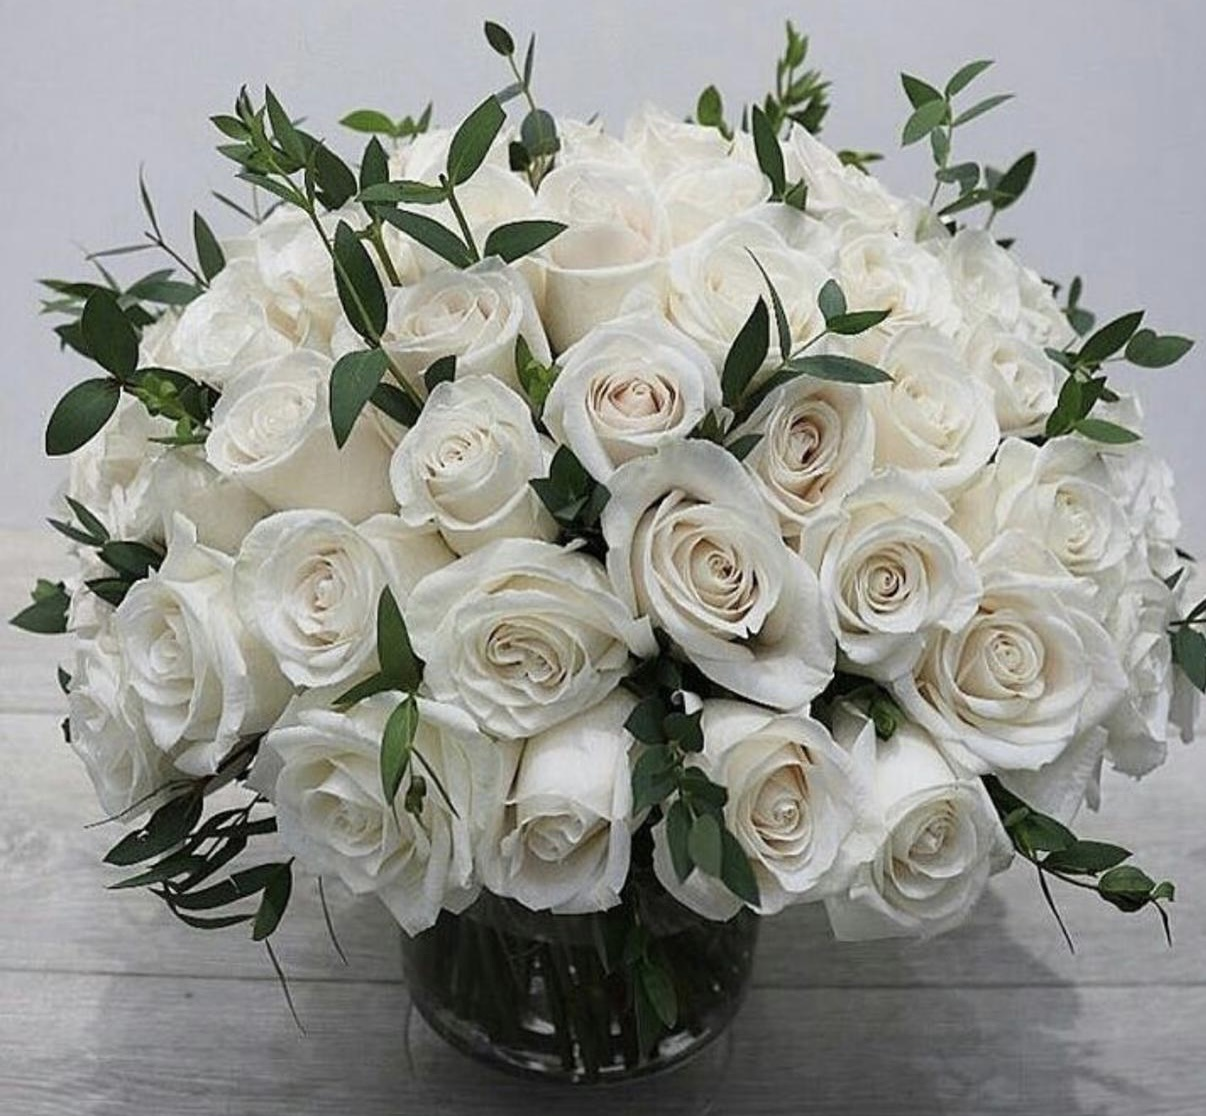 80 std roses with vases and leaves